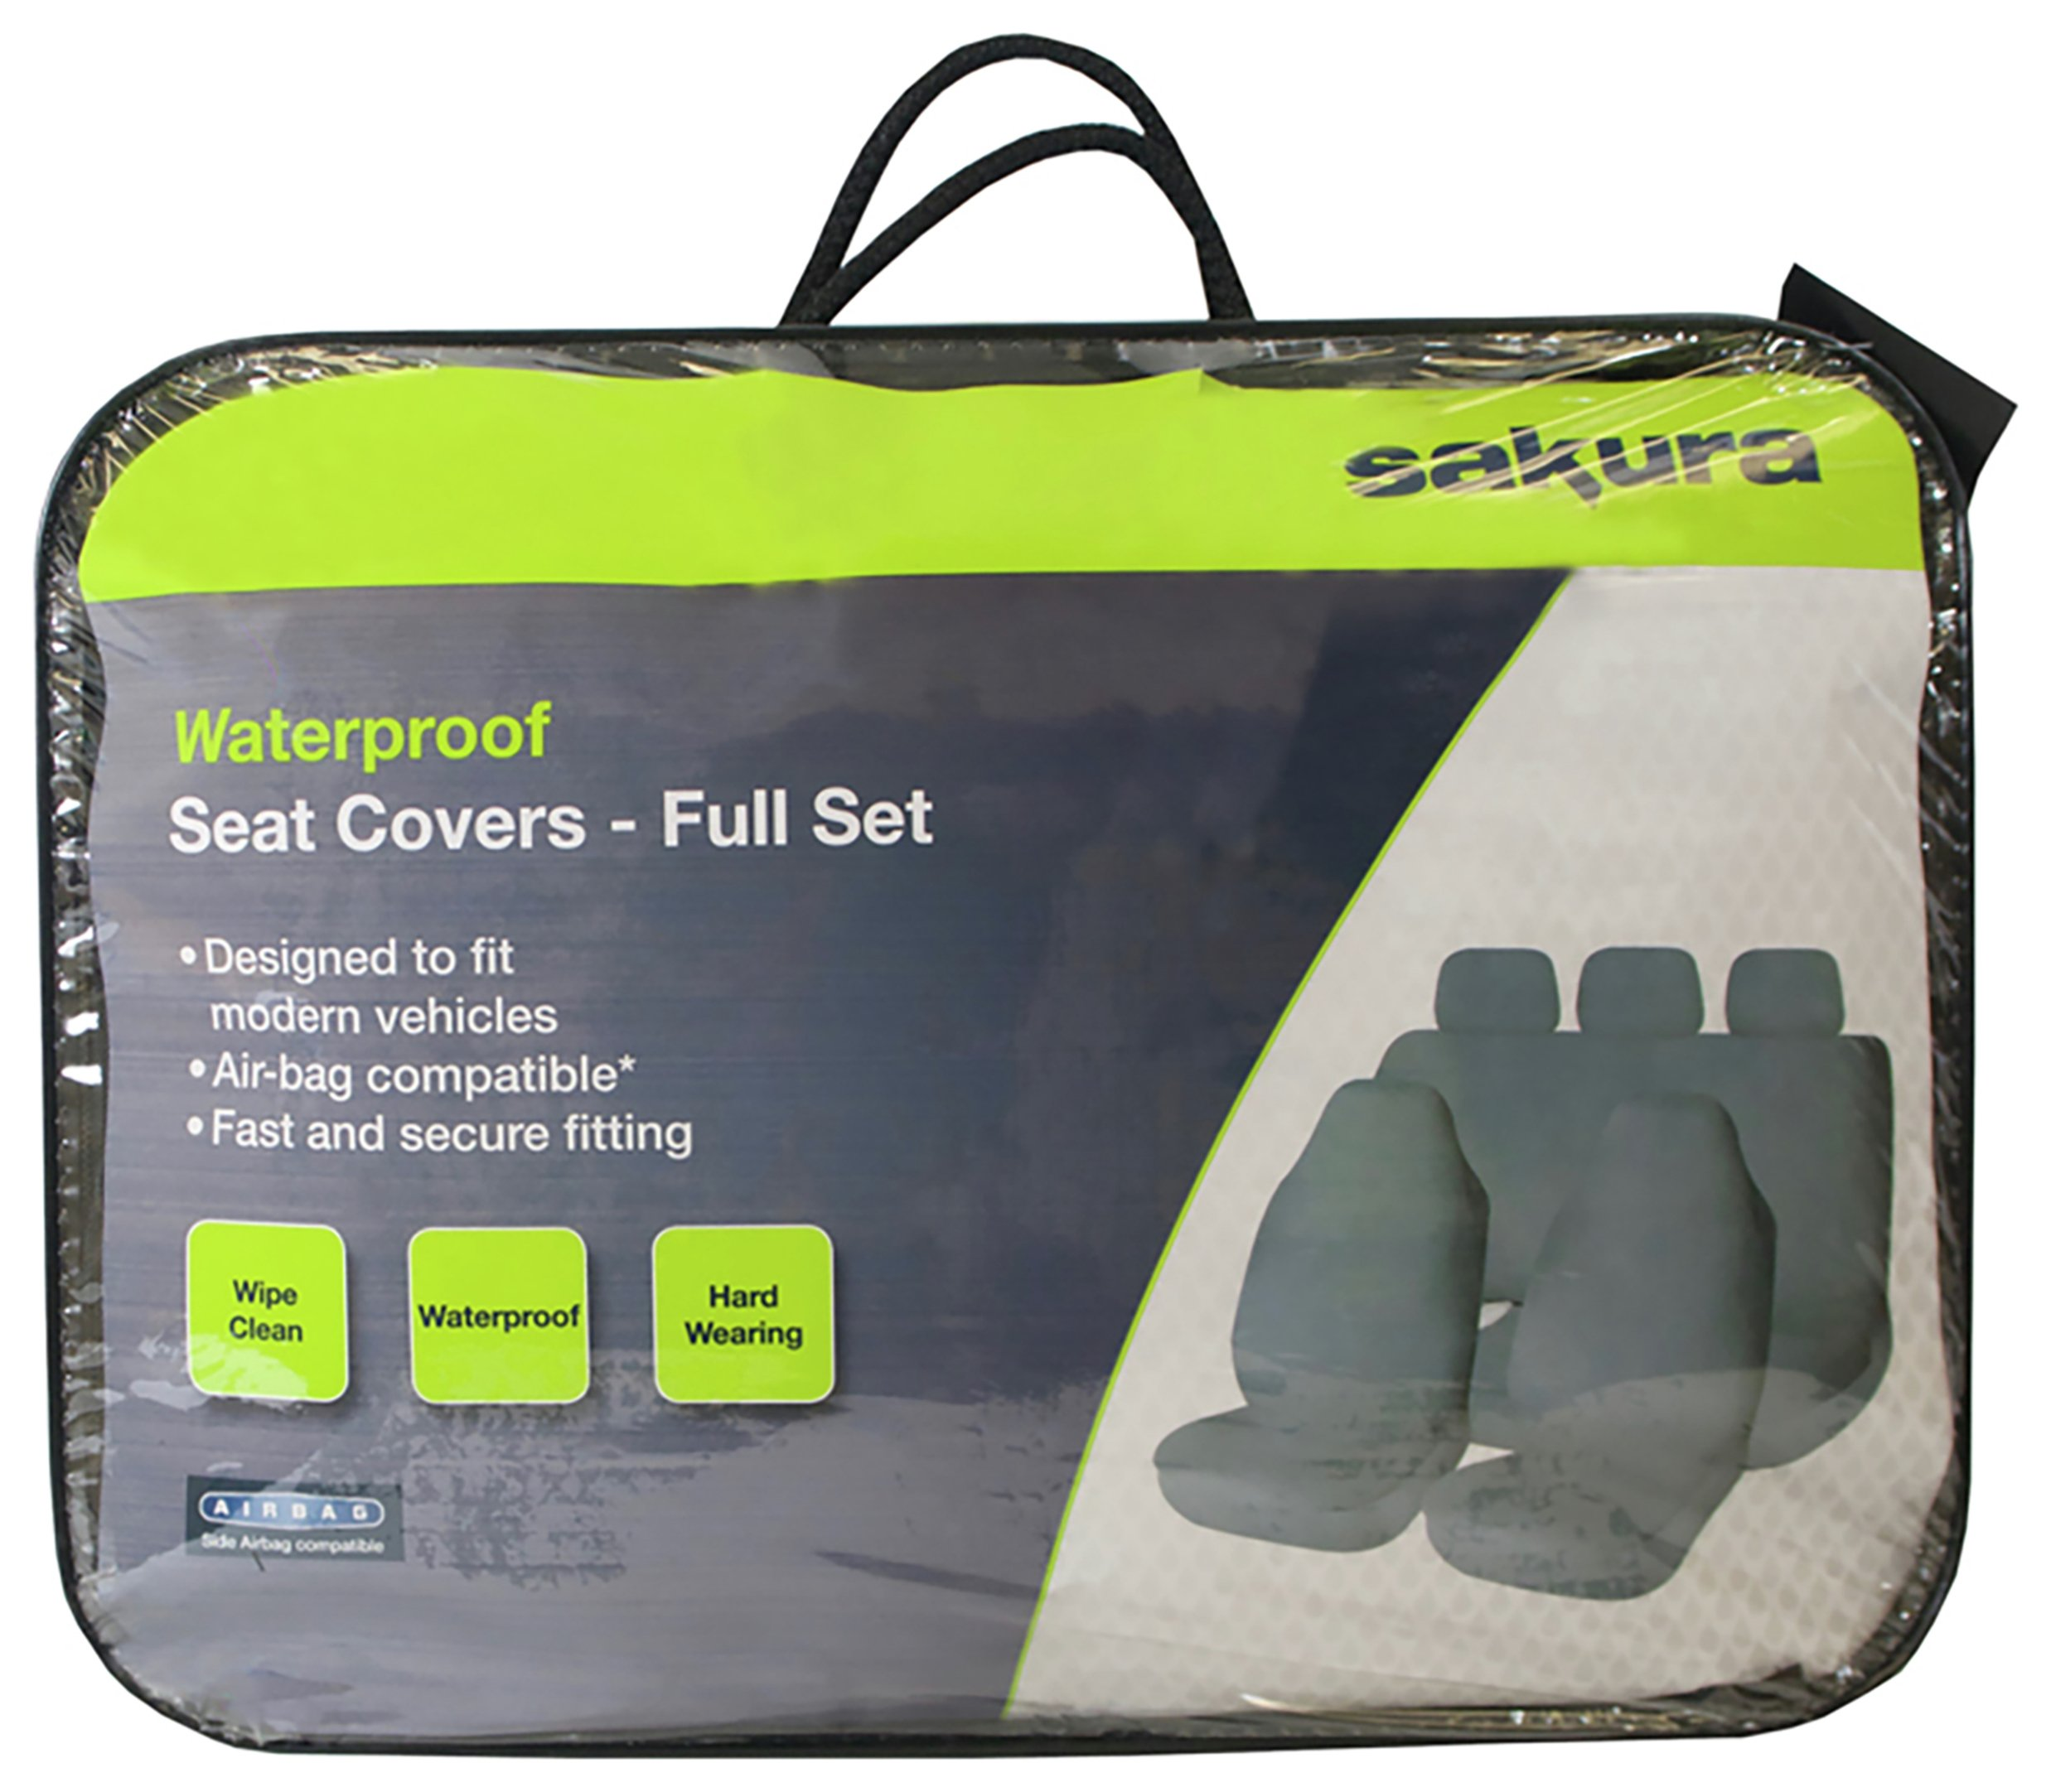 Sakura Waterproof Front and Rear Seat Cover Set